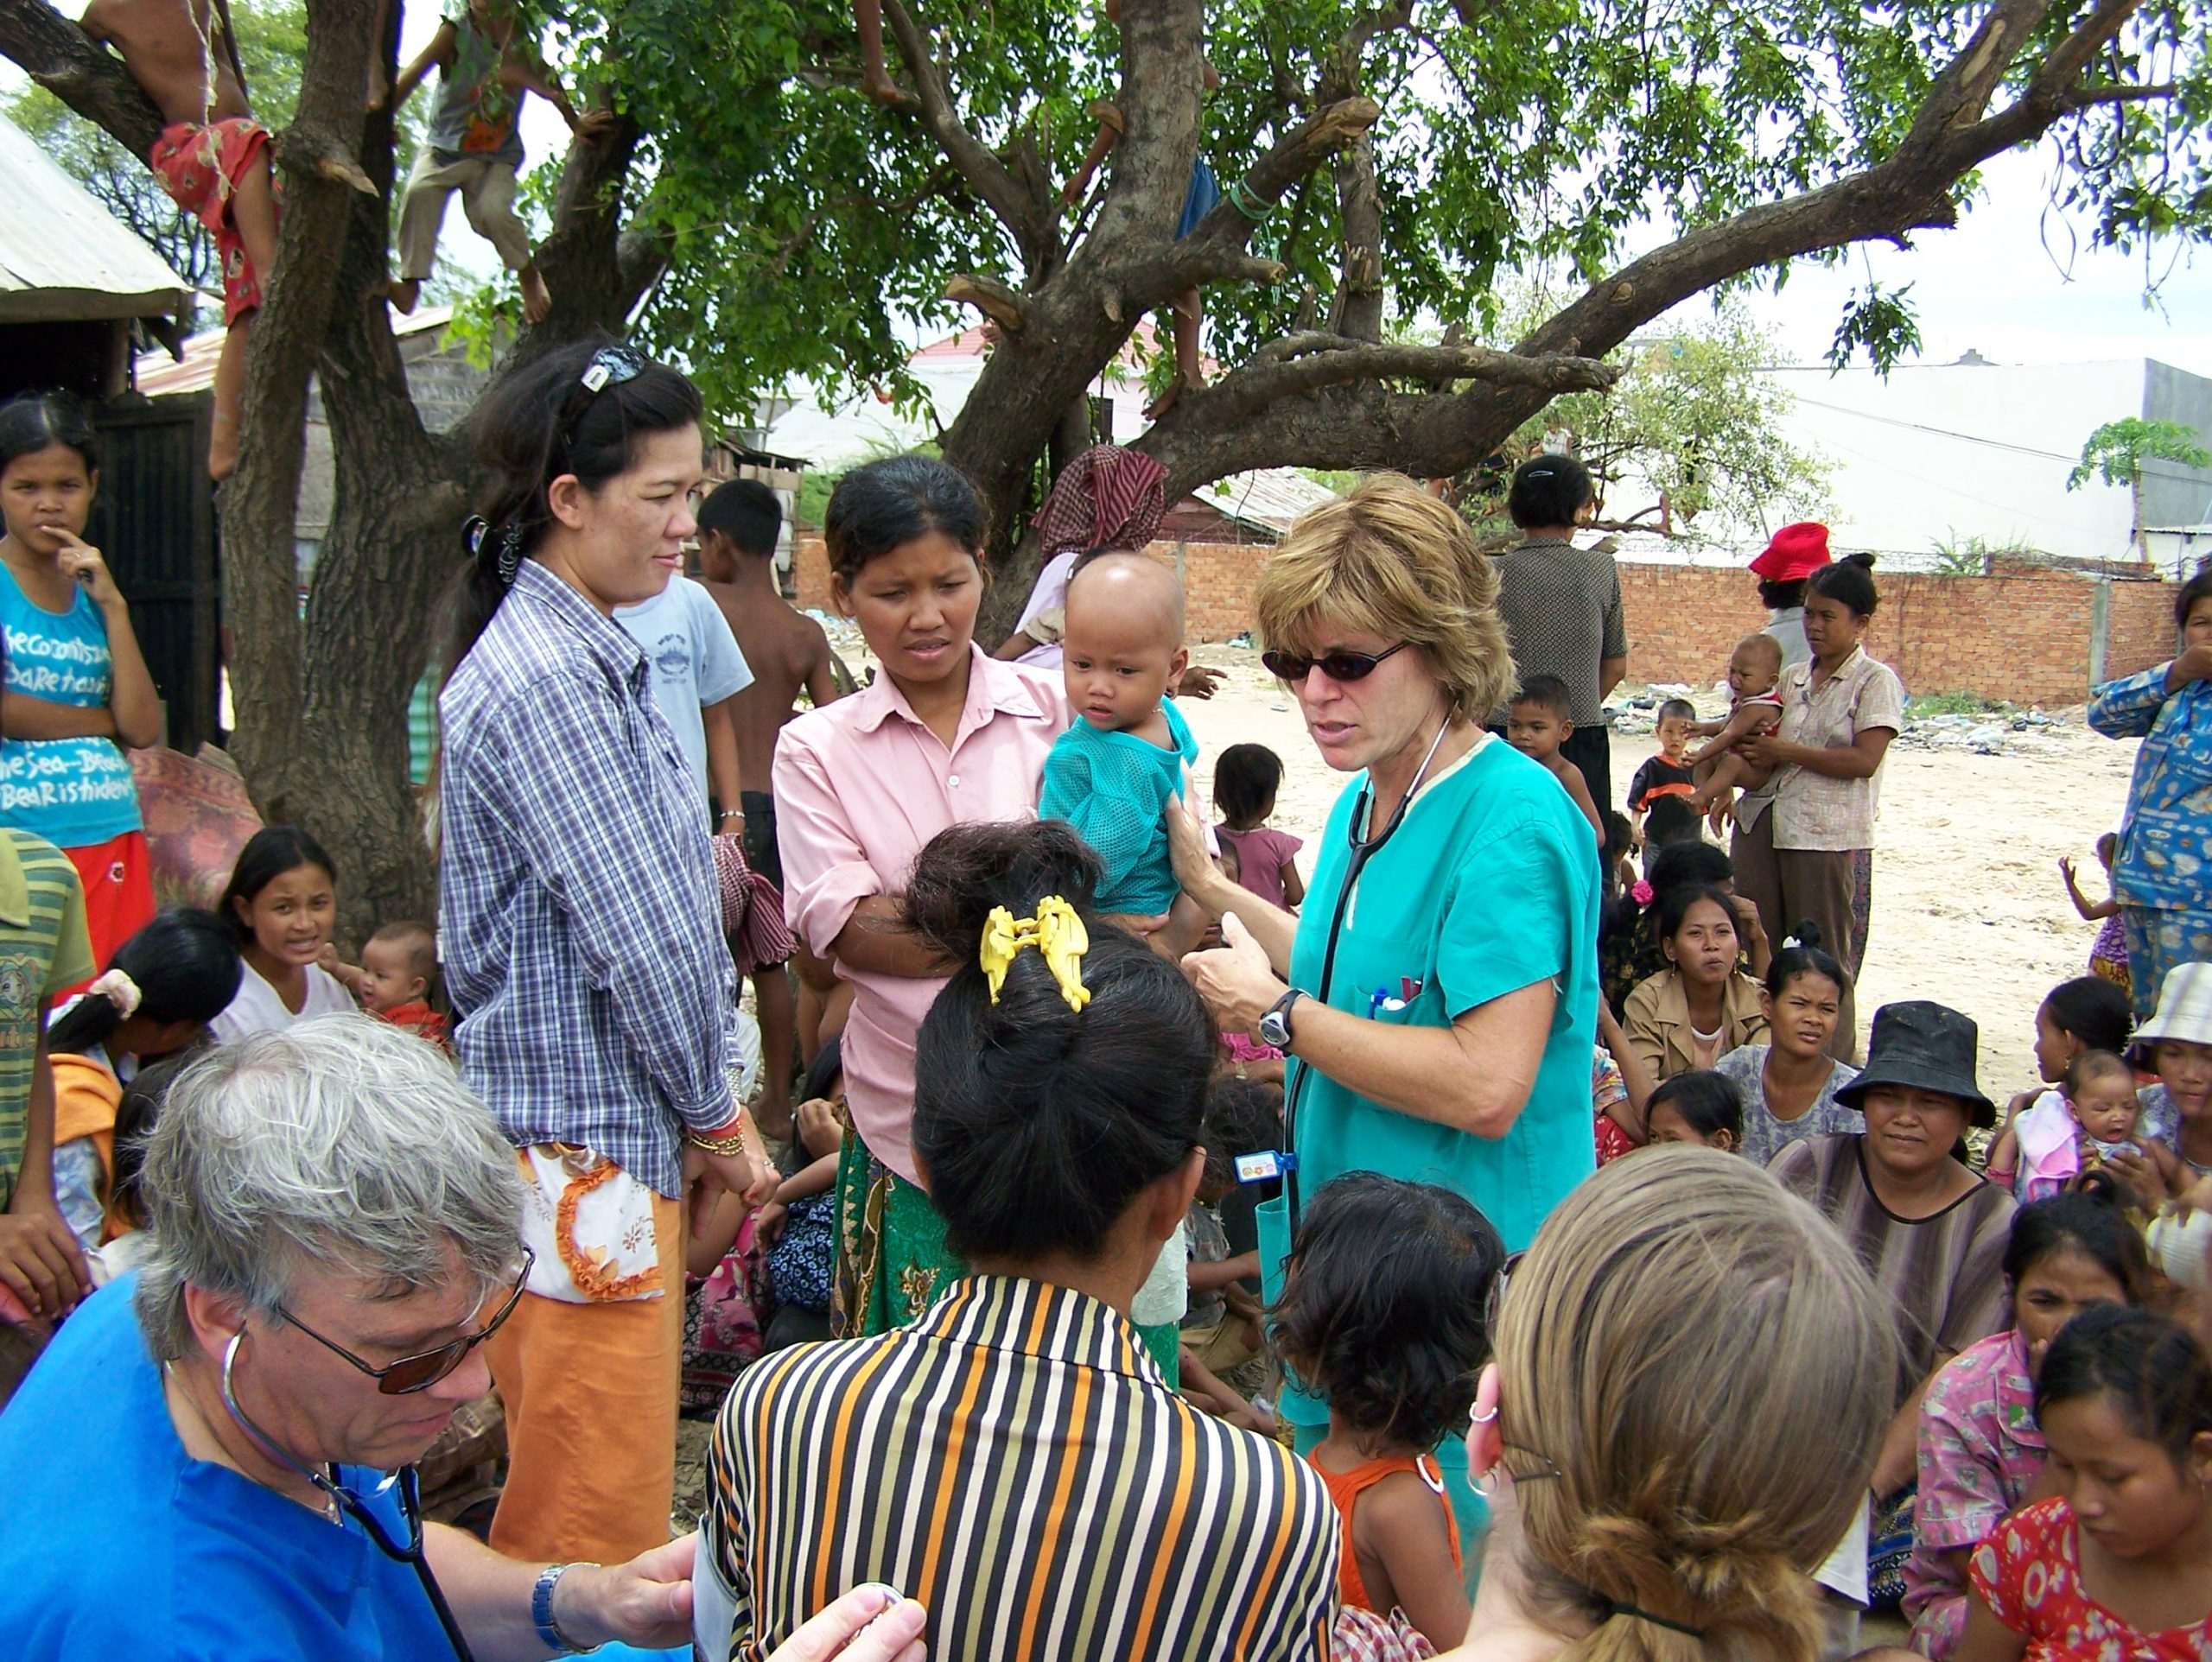 Maureen Tippen works with the community in a village in Cambodia. Image credit: Nicole Rochon